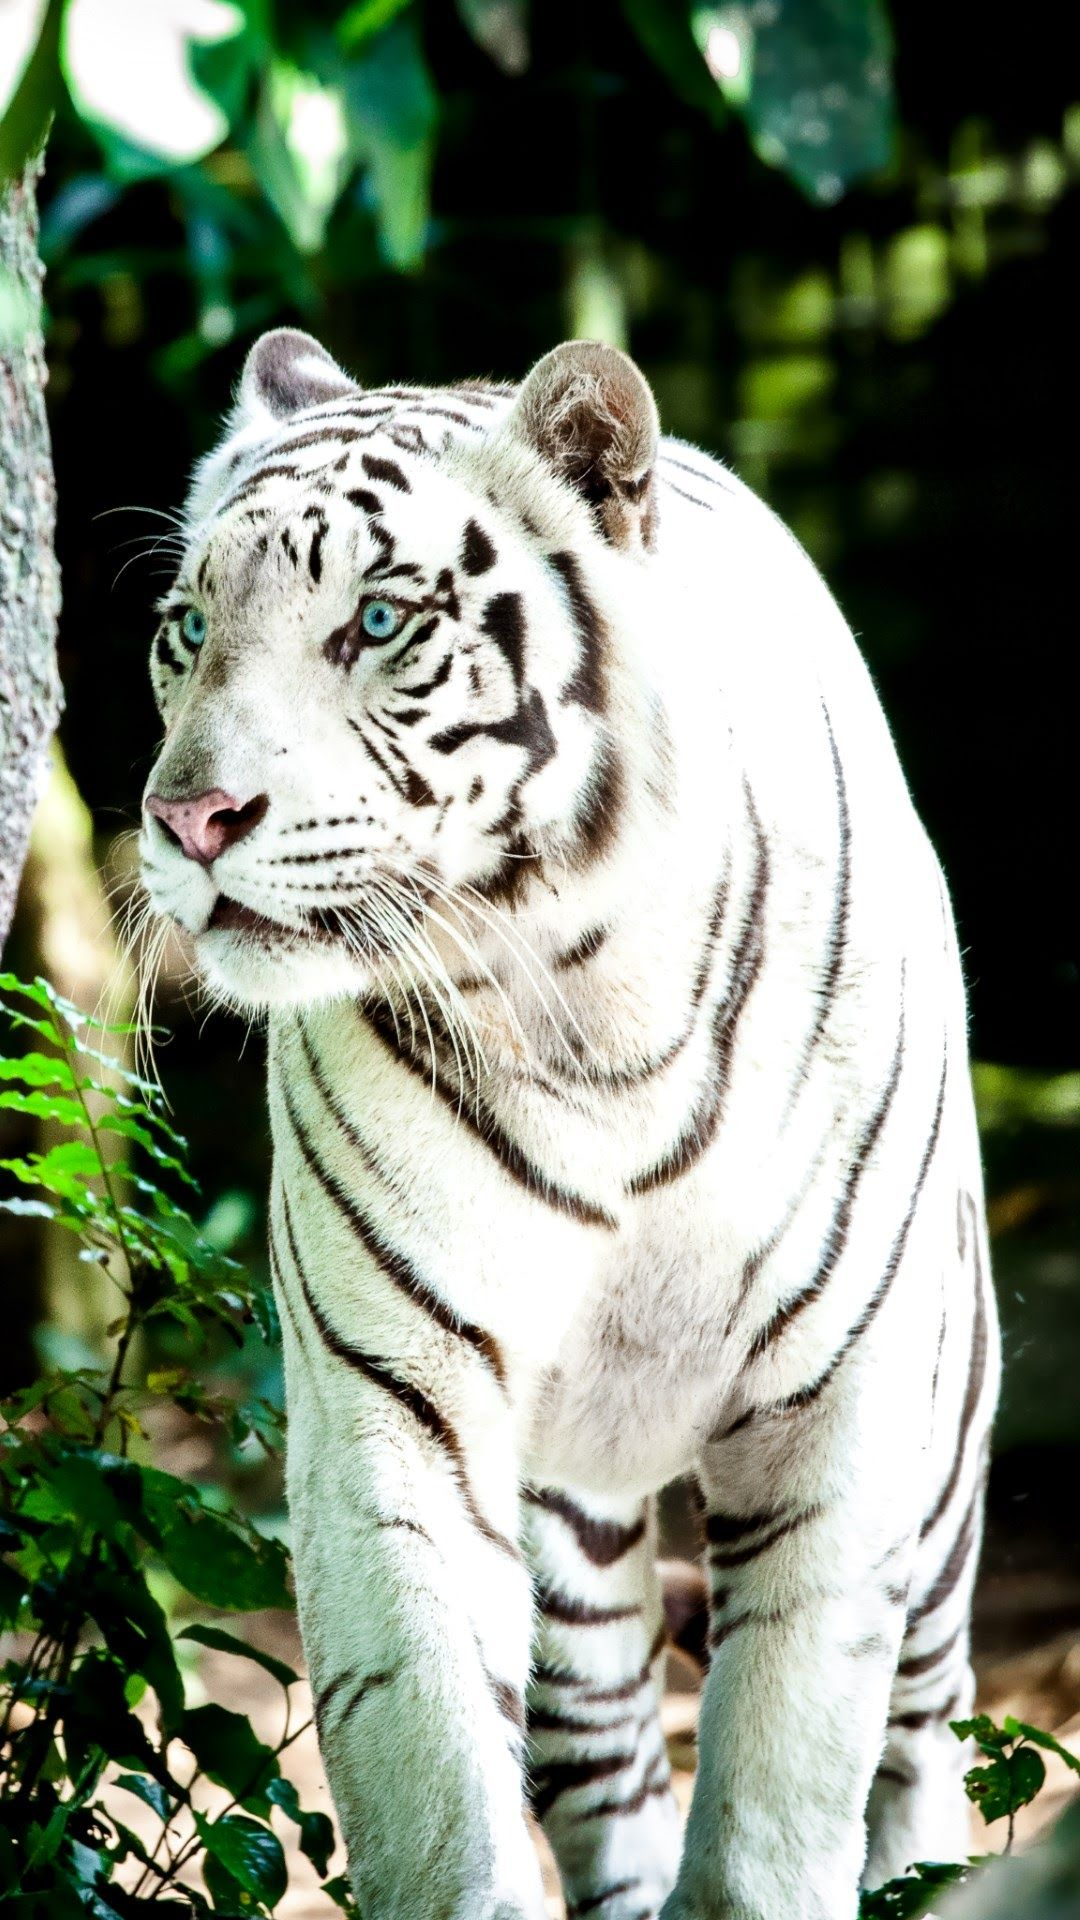 white tiger wallpapers · 4k hd desktop phone | backgrounds